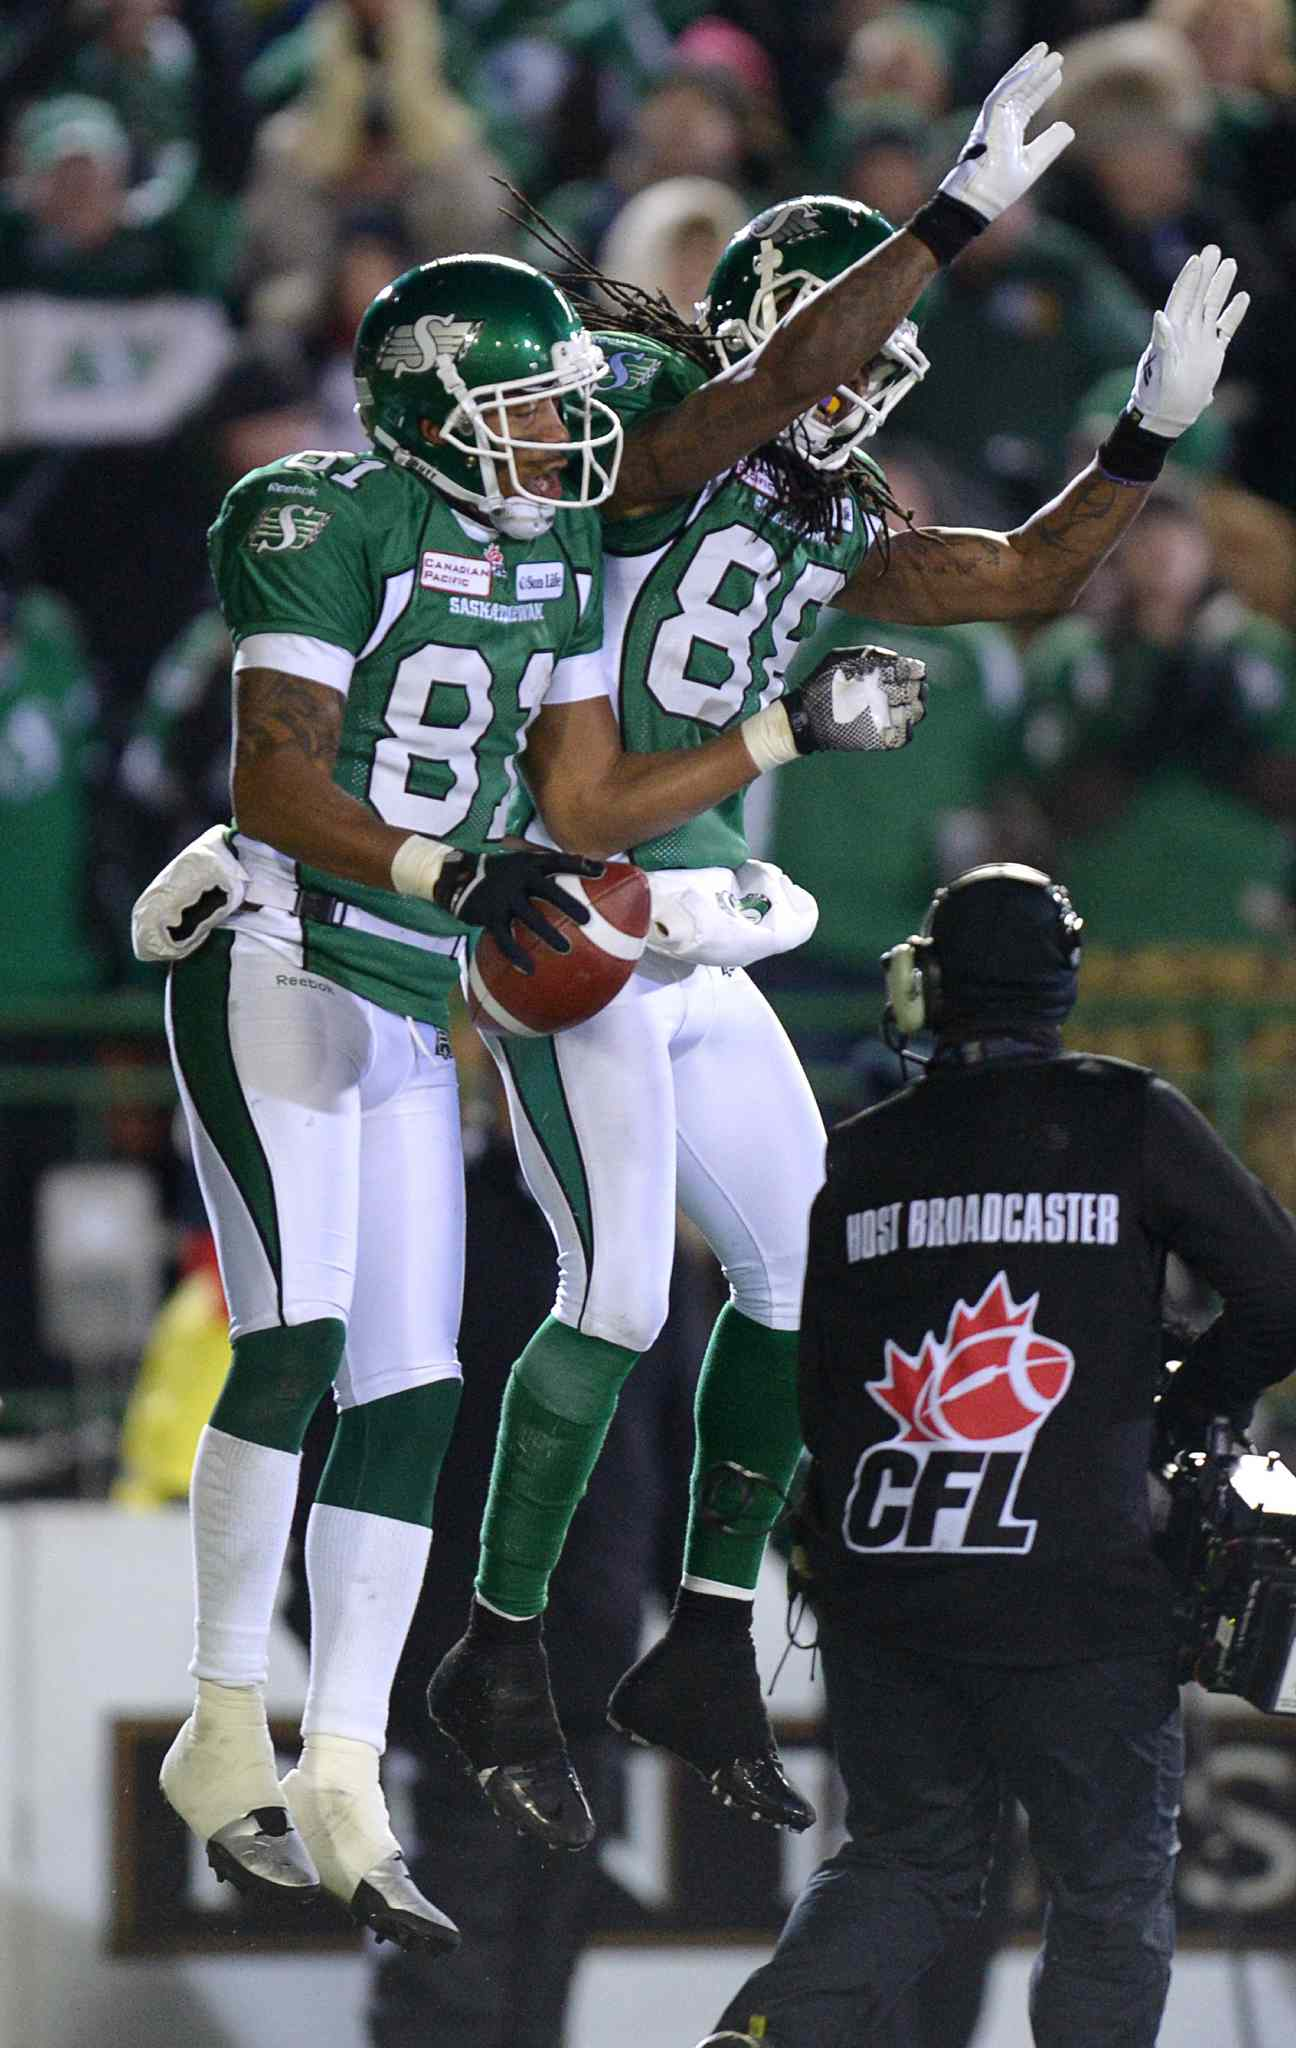 Saskatchewan Roughriders slotback Geroy Simon (left) celebrates his second touchdown against the Hamilton Tiger-Cats with teammate wide receiver Taj Smith during the second quarter.